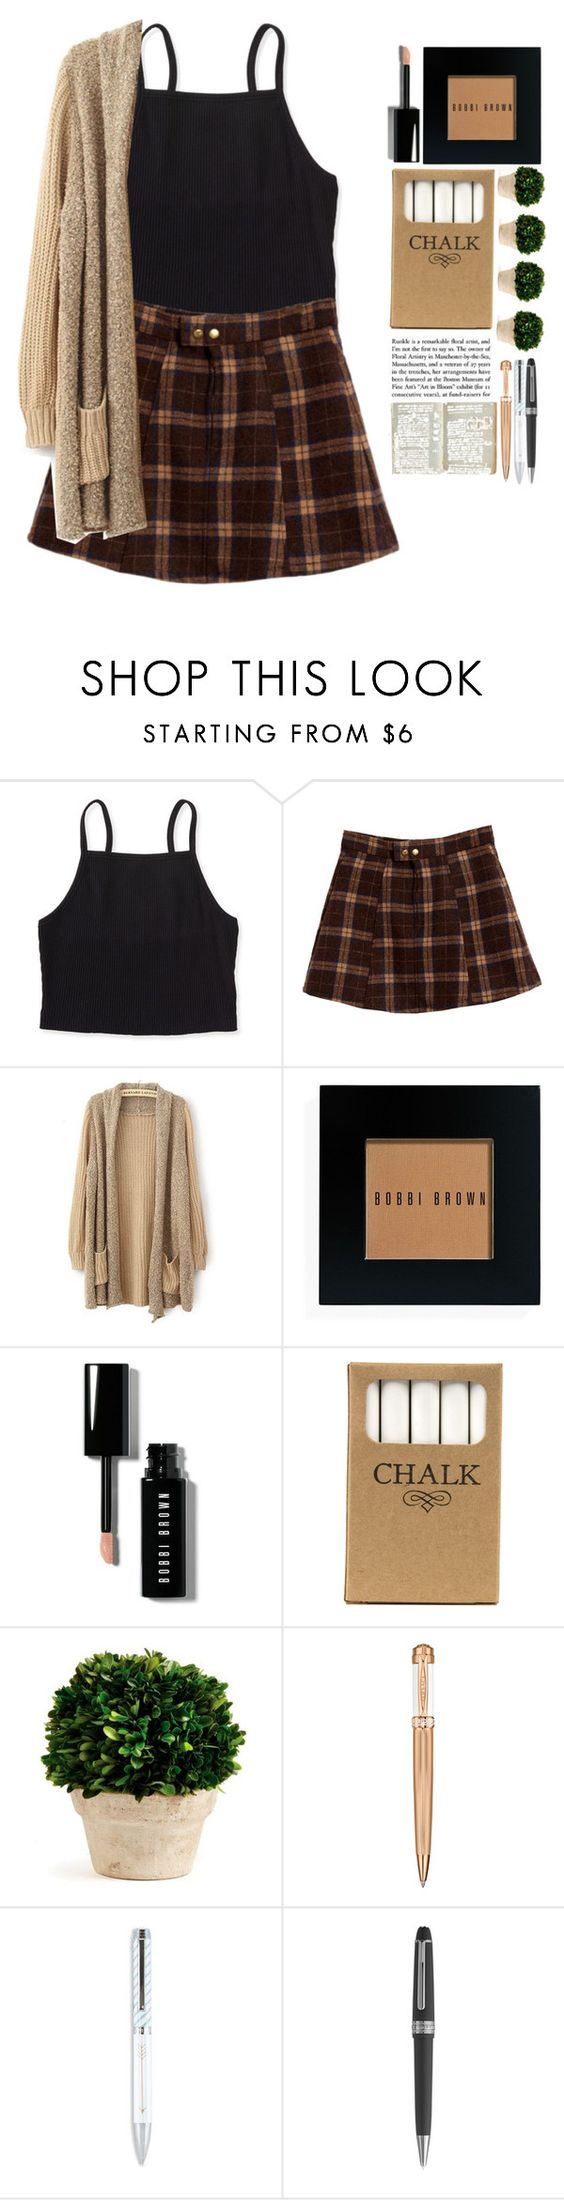 """6:35 am Friday, September 23"" by woah-its-me ❤ liked on Polyvore featuring Aéropostale, Bobbi Brown Cosmetics, Jayson Home, Napa Home & Garden, Versace and Montblanc"